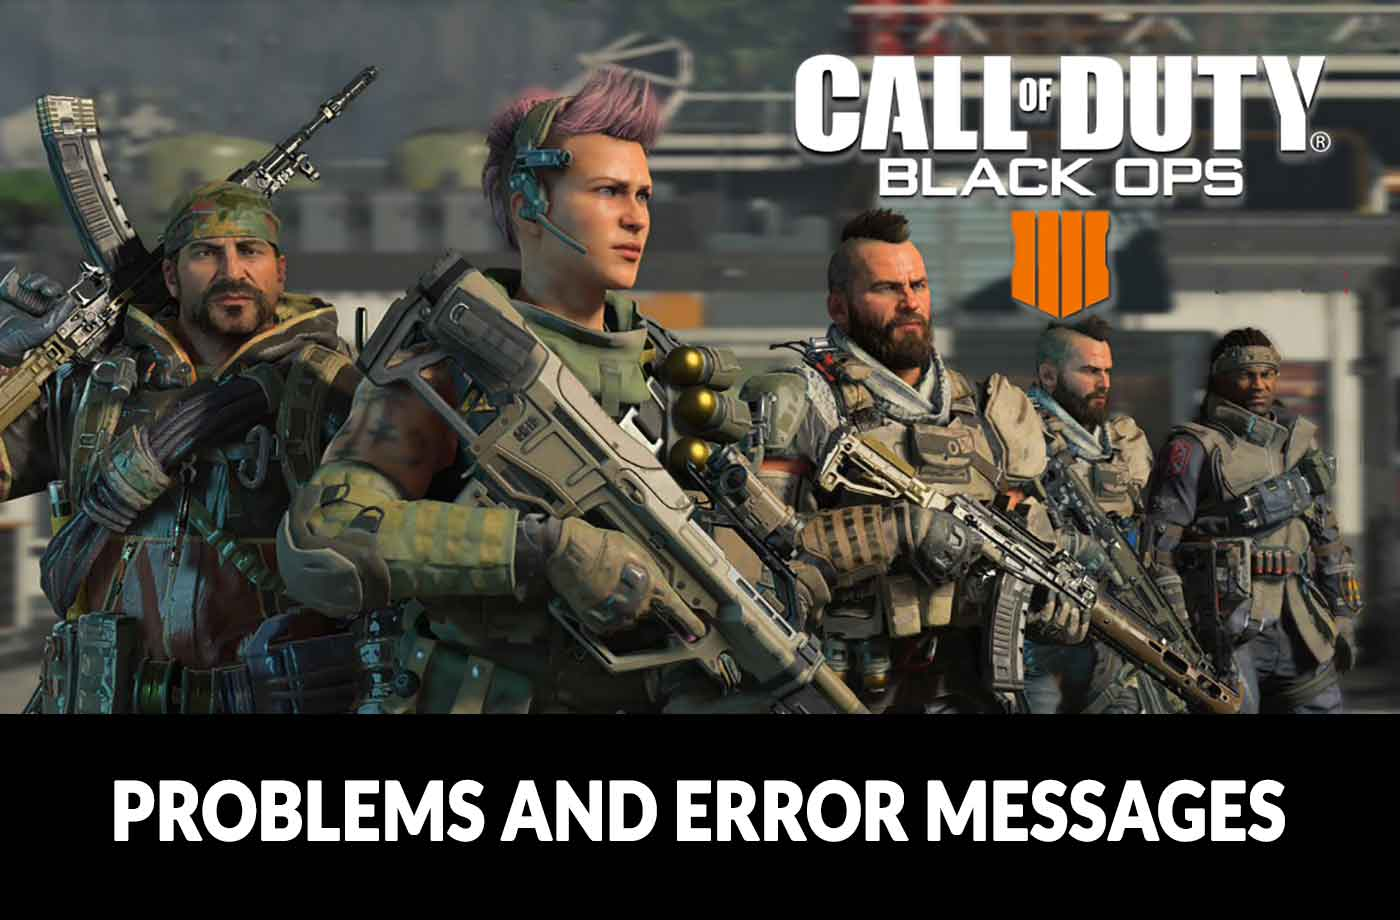 Call of Duty Black Ops 4 multiplayer / theater mode logout